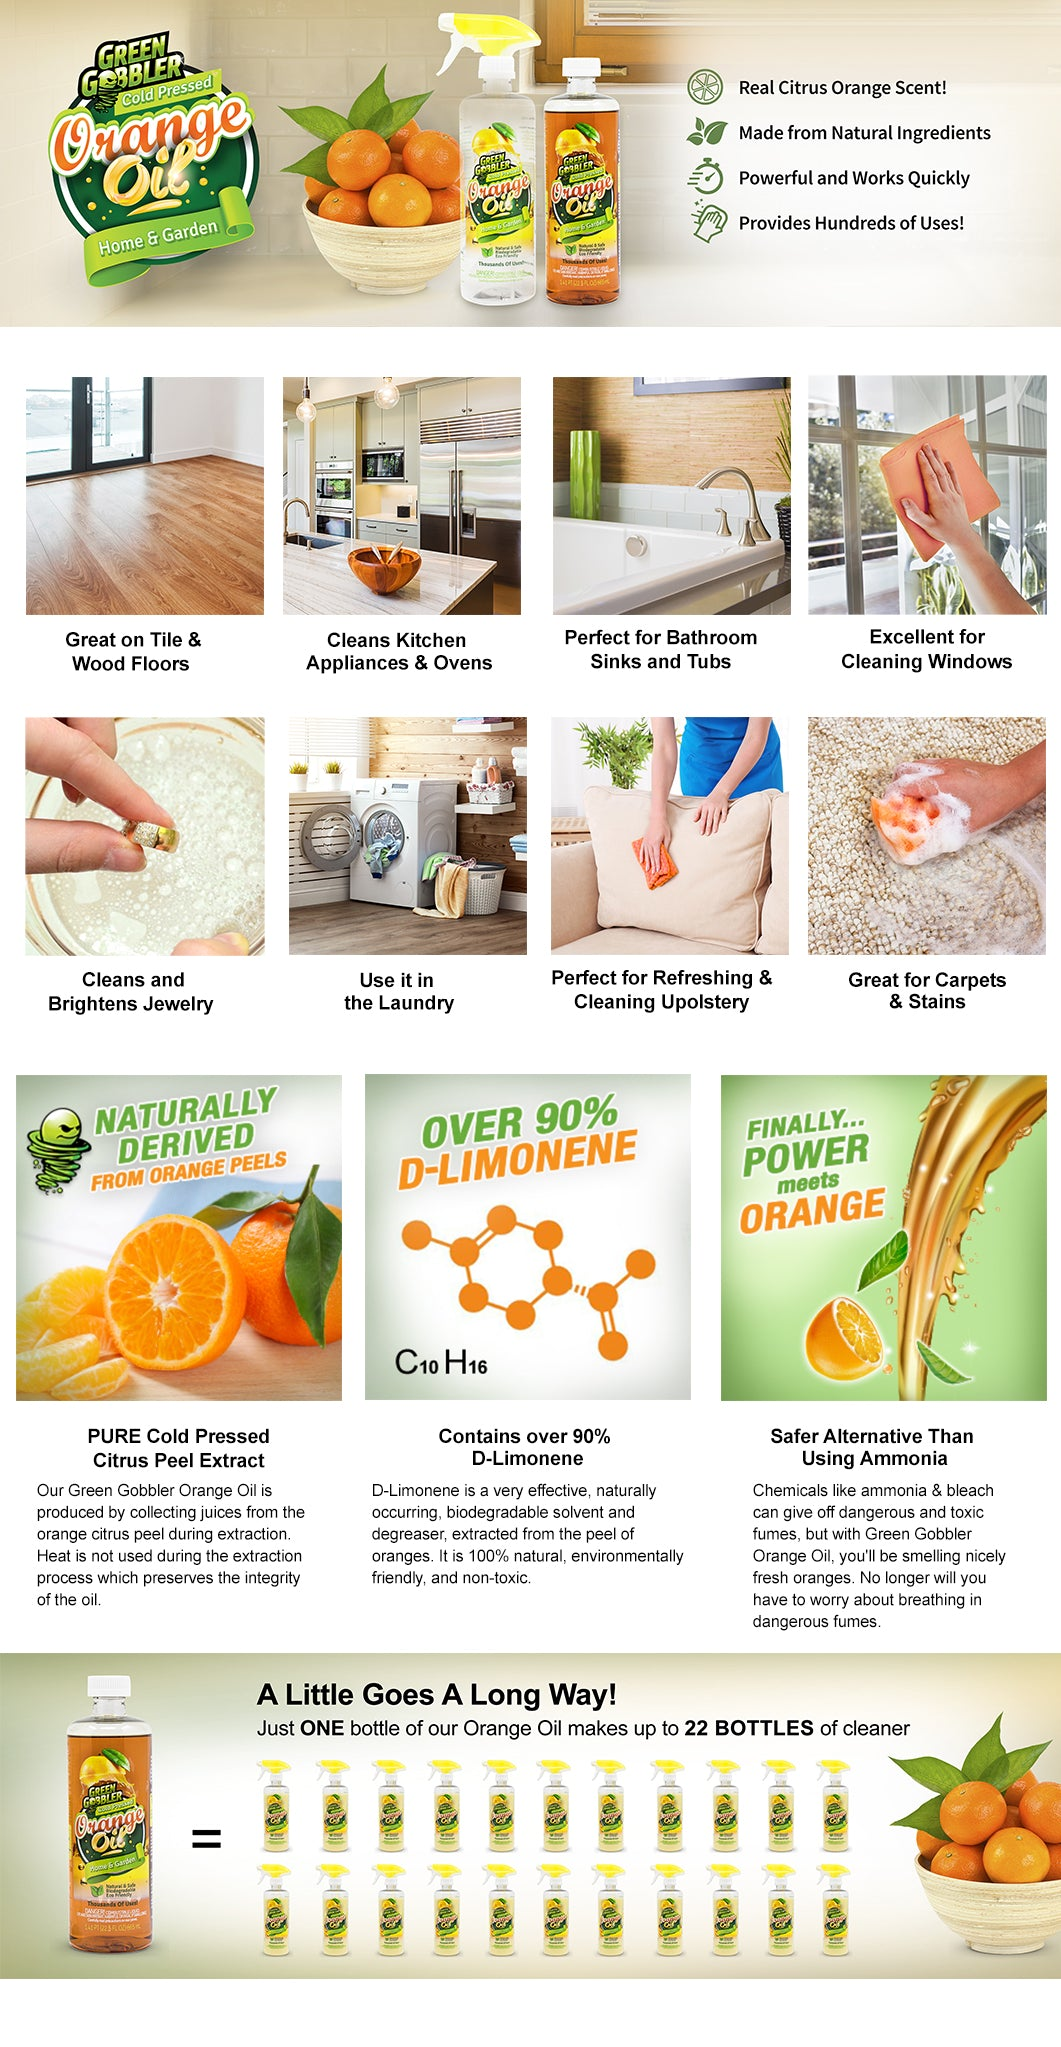 orange oil d-limonene cleaner